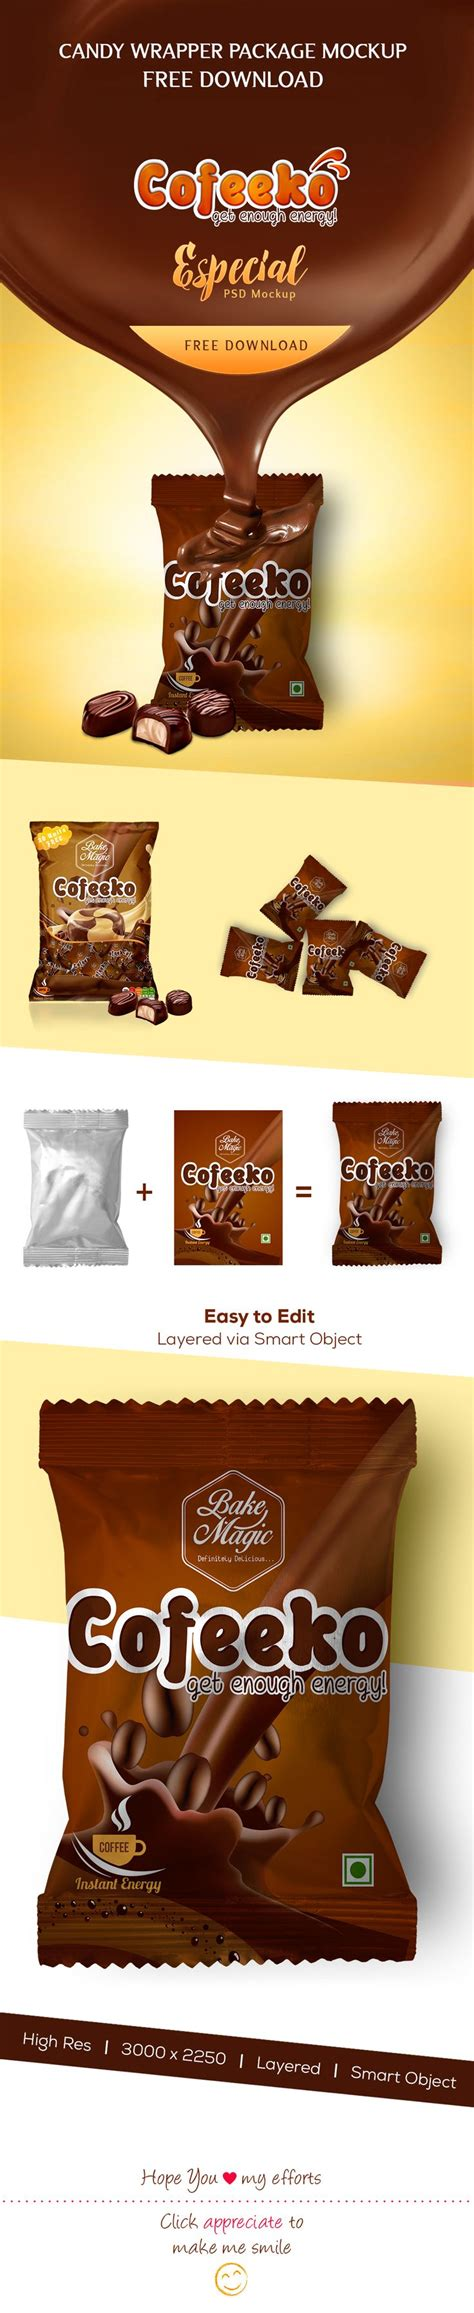 Don't forget to share with your friends! Free foil packet PSD mockup #packaging #candy #sweet # ...